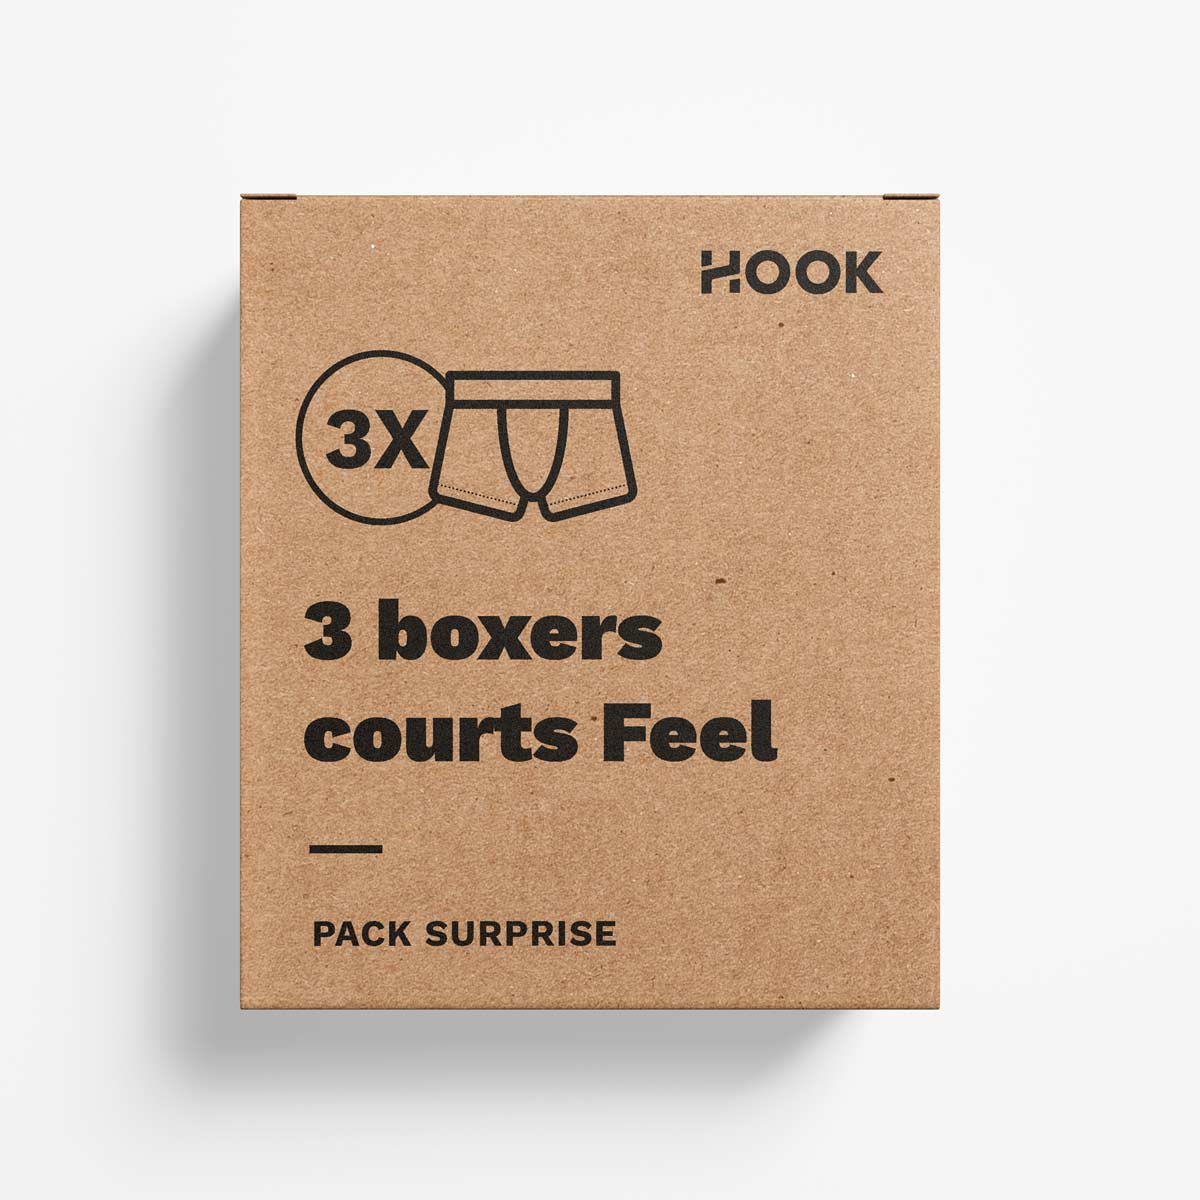 Boxer court Feel par Hook : pack de 3 boxers courts